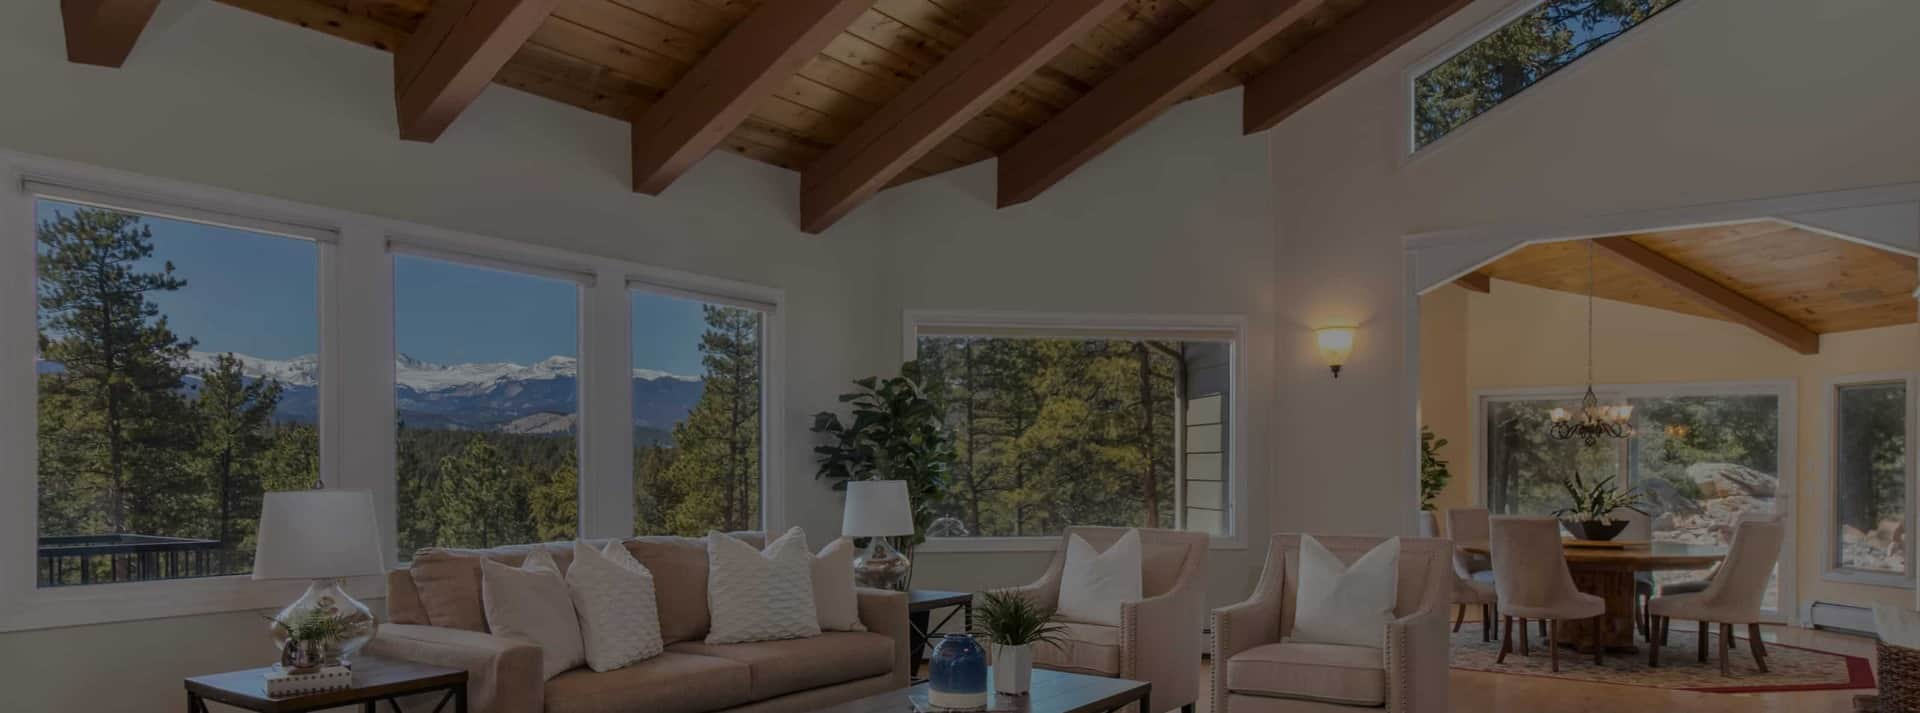 interior of luxury home with exposed beams, vaulted ceilings, and large windows.